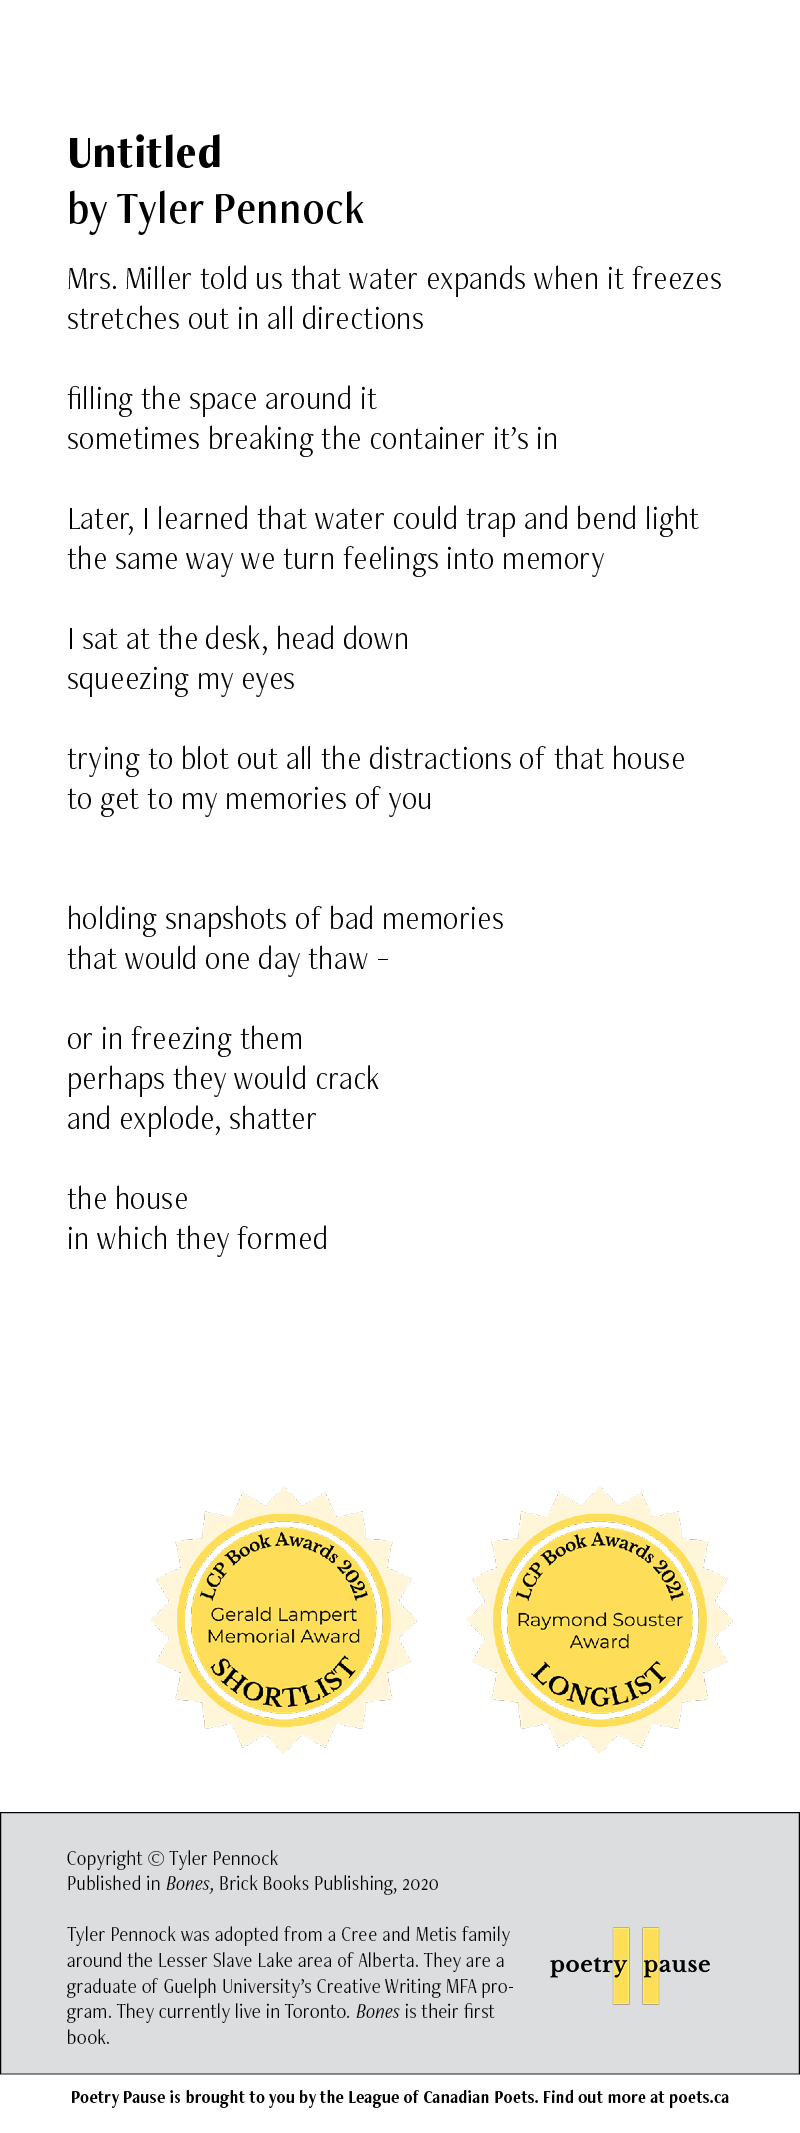 Poem Title:Untitled Poet Name: Tyler Pennock Poem: Mrs. Miller told us that water expands when it freezes stretches out in all directions  filling the space around it sometimes breaking the container it's in  Later, I learned that water could trap and bend light the same way we turn feelings into memory  I sat at the desk, head down squeezing my eyes  trying to blot out all the distractions of that house to get to my memories of you   holding snapshots of bad memories that would one day thaw –  or in freezing them perhaps they would crack  and explode, shatter   the house  in which they formed End of poem. Credits:  Copyright © Tyler Pennock Published in Bones, Brick Books Publishing, 2020  Tyler Pennock was adopted from a Cree and Metis family around the Lesser Slave Lake area of Alberta. They are a graduate of Guelph University's Creative Writing MFA program. They currently live in Toronto. Bones is their first book.